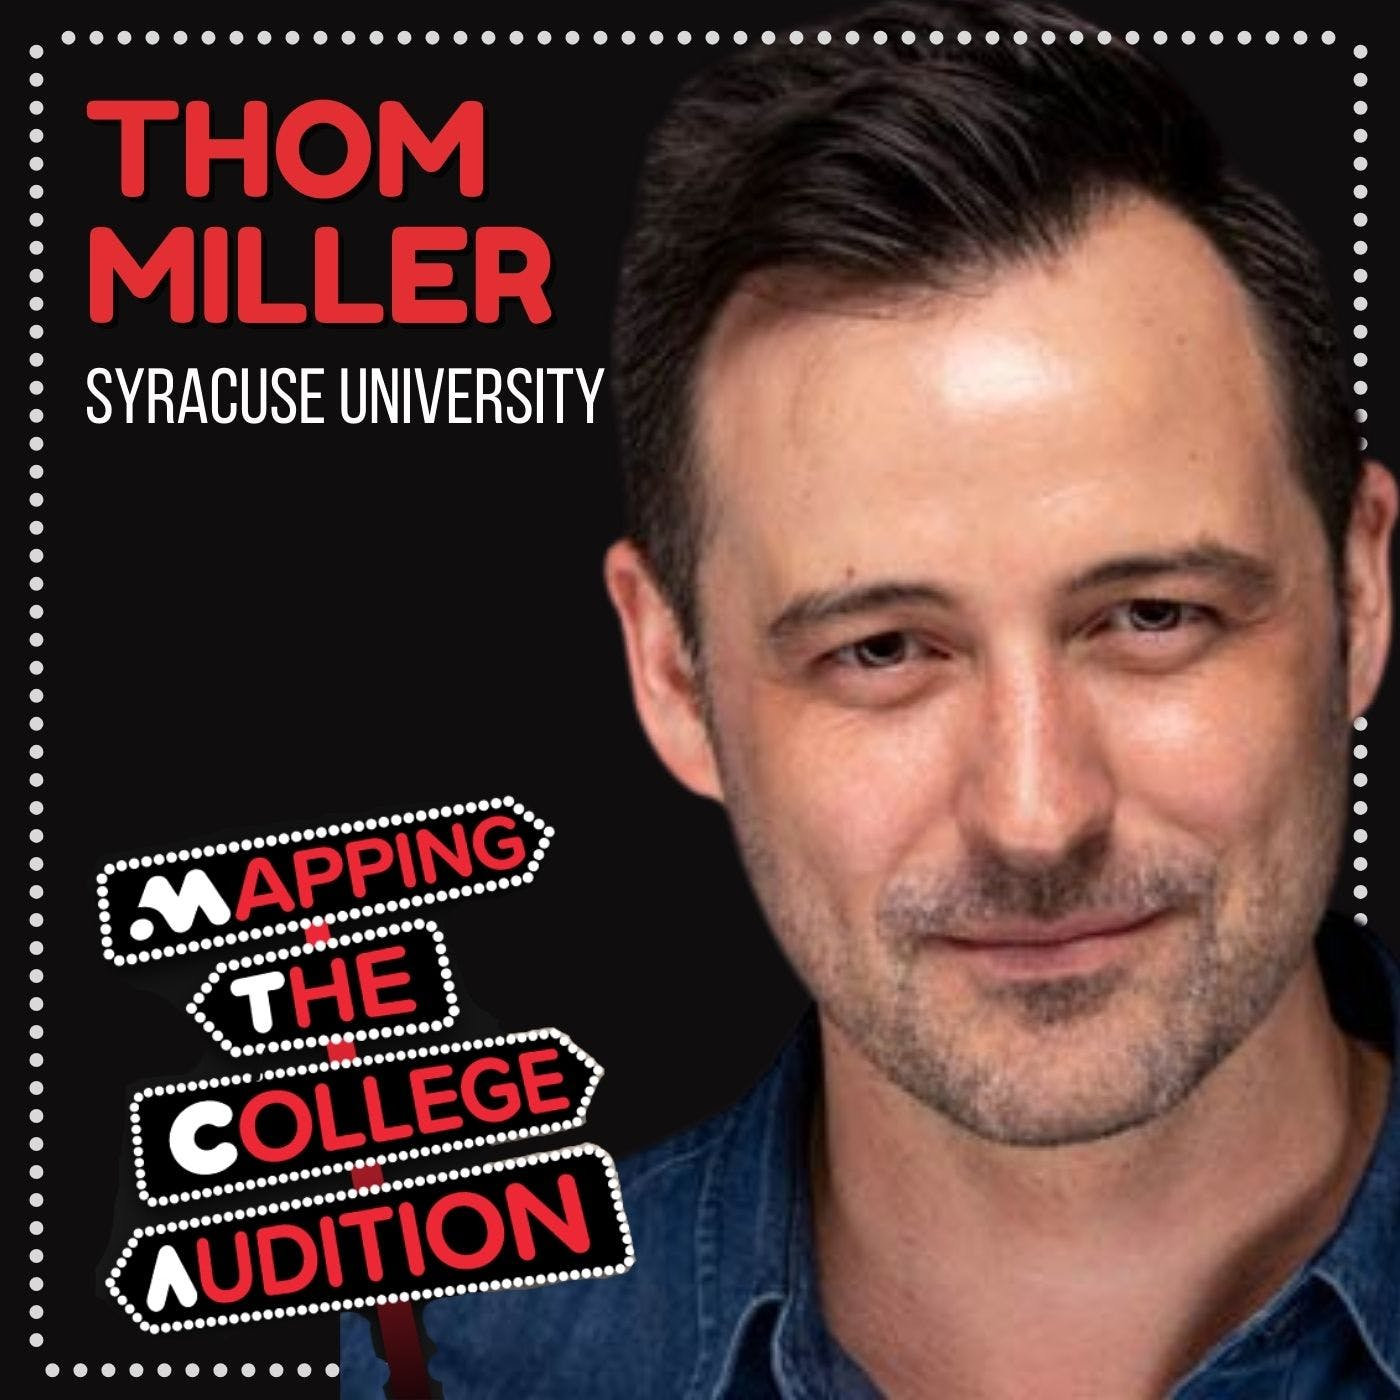 Ep. 22 (CDD): Thom Miller from Syracuse University on The Prep to Play